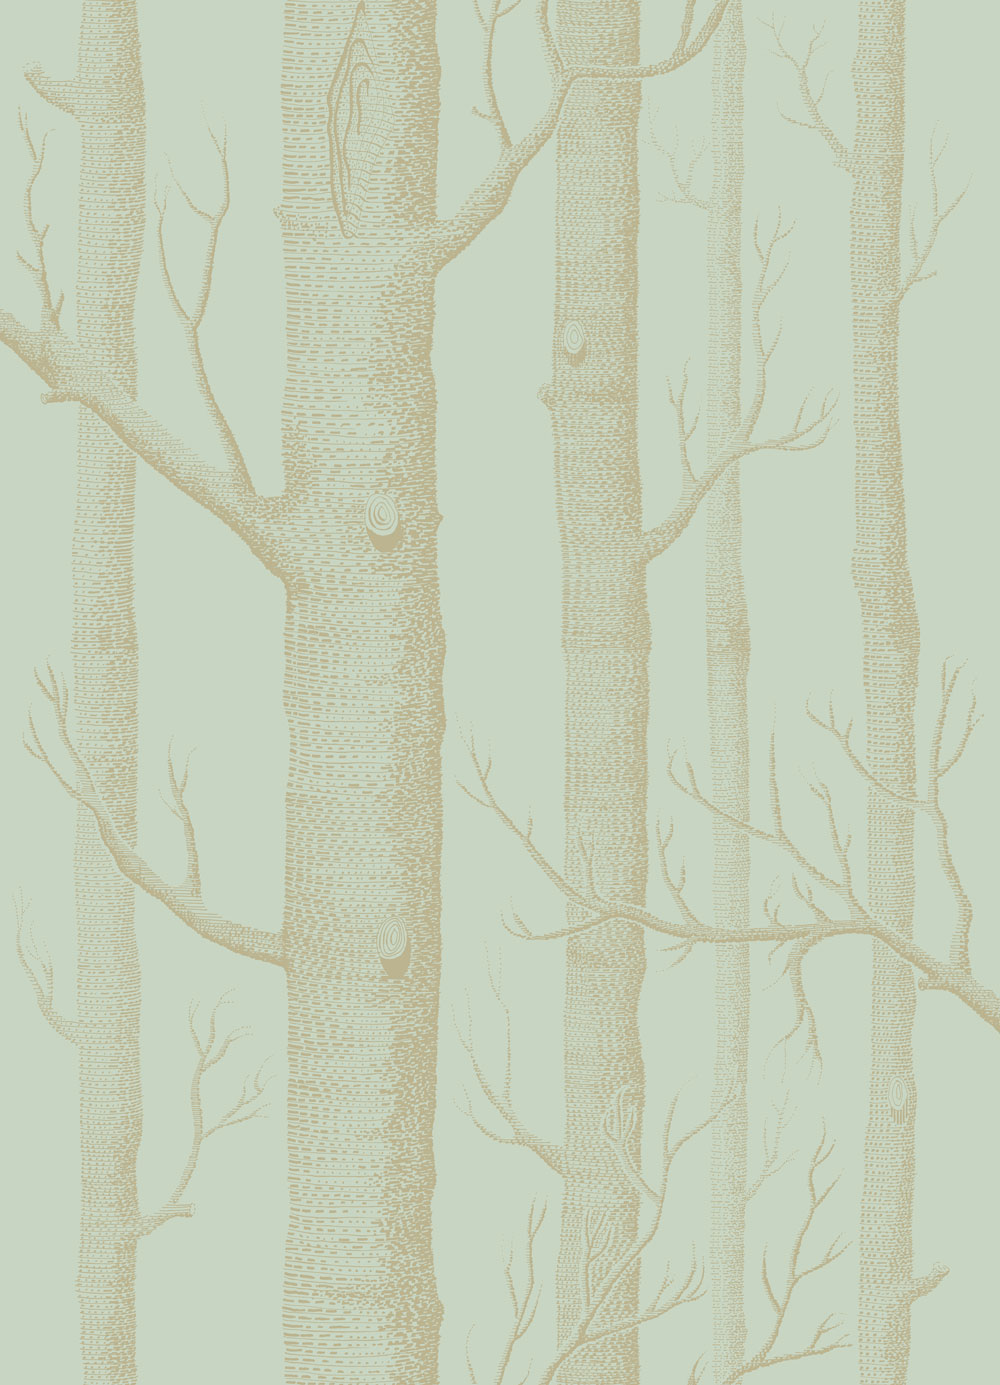 Woods by Cole & Son - Green & Gold : Wallpaper Direct